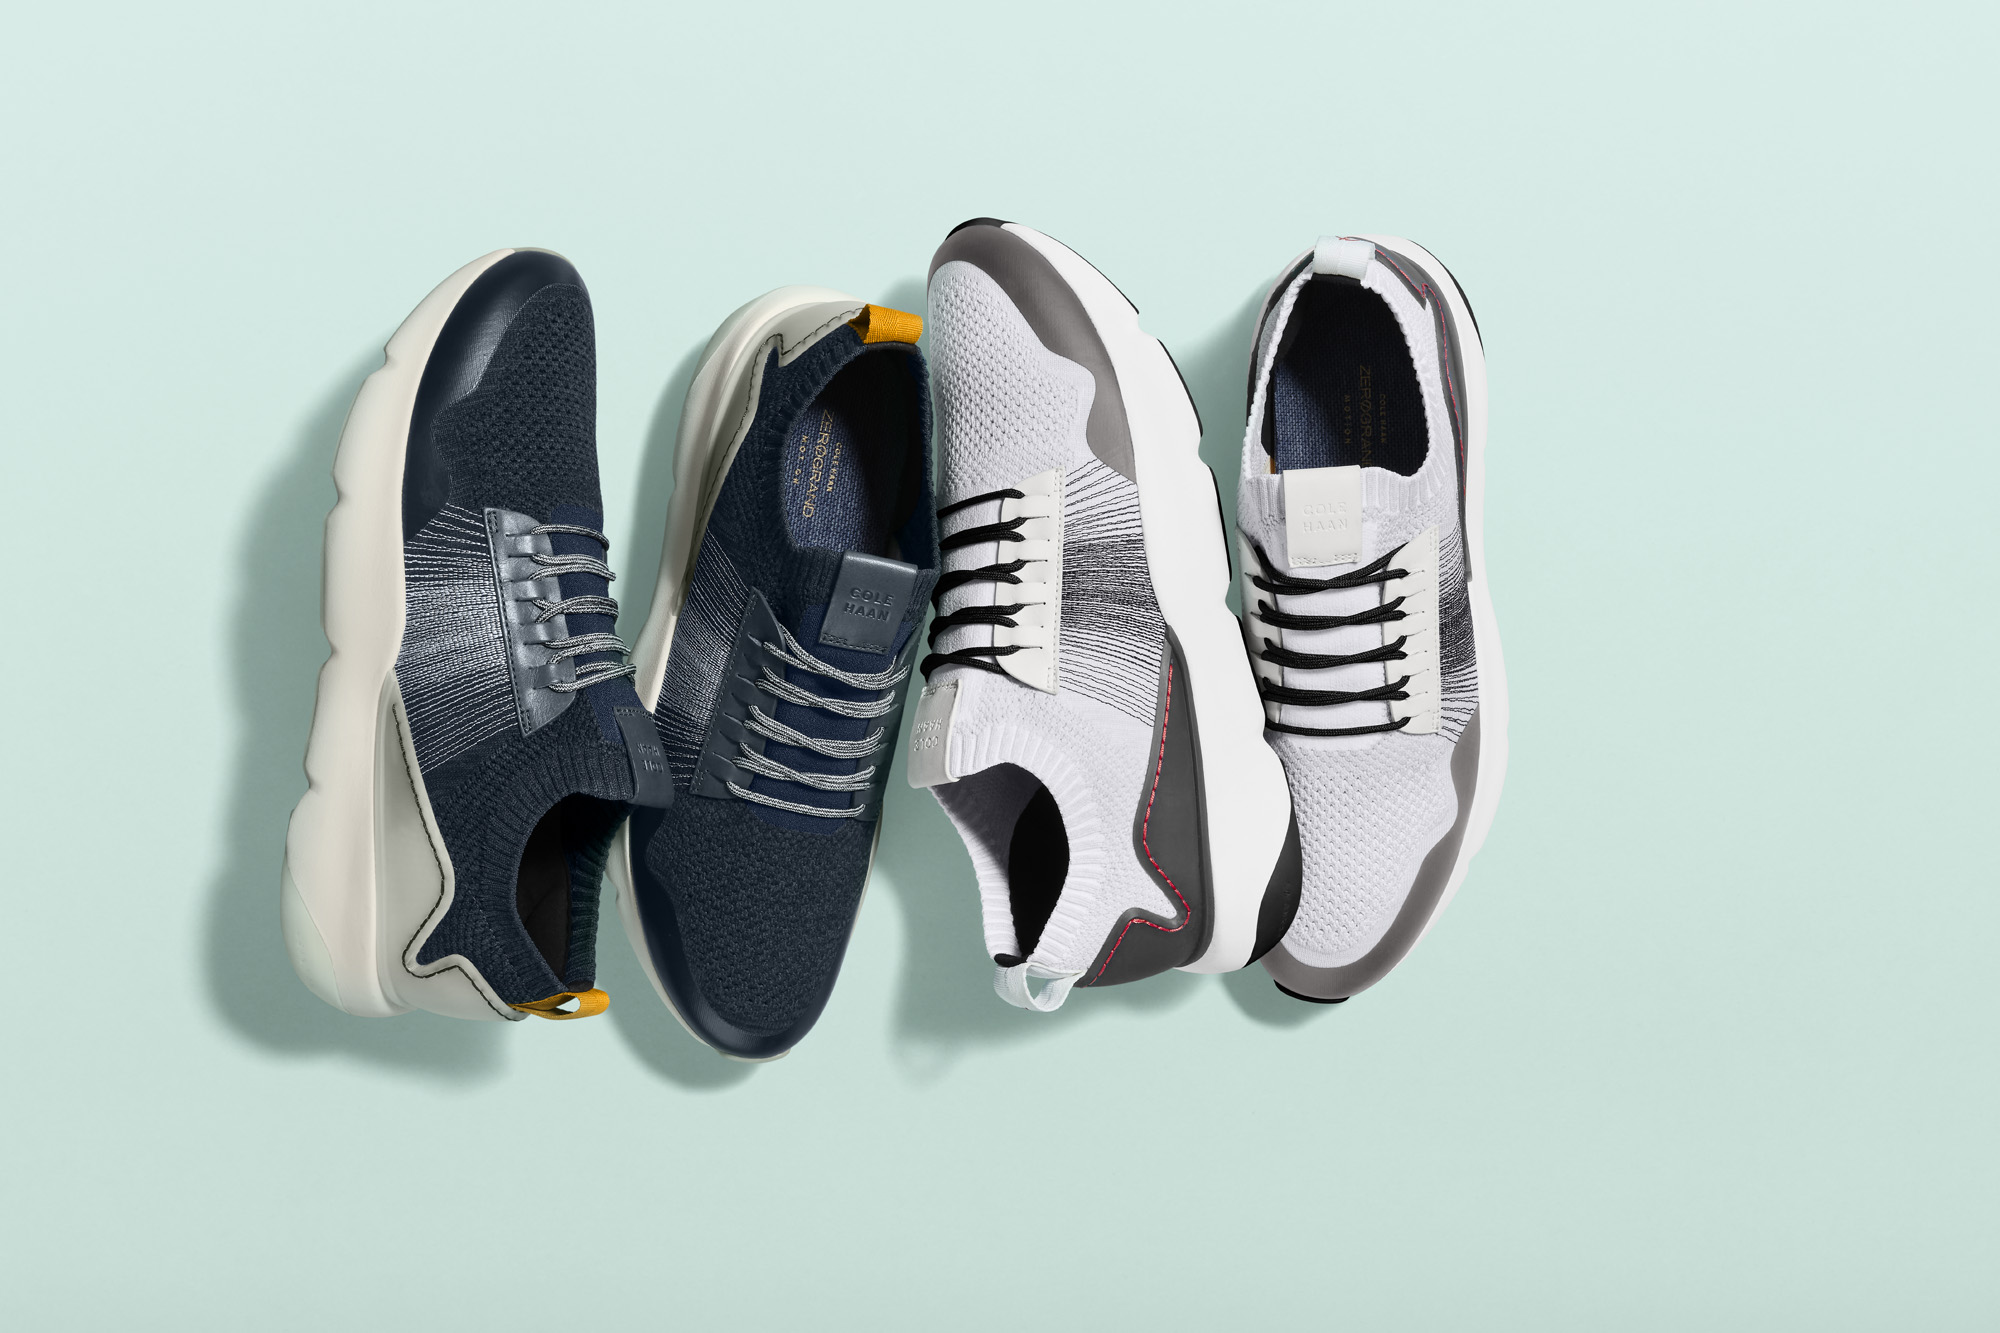 Cole Haan SS19 Zerogrand trainer group shot